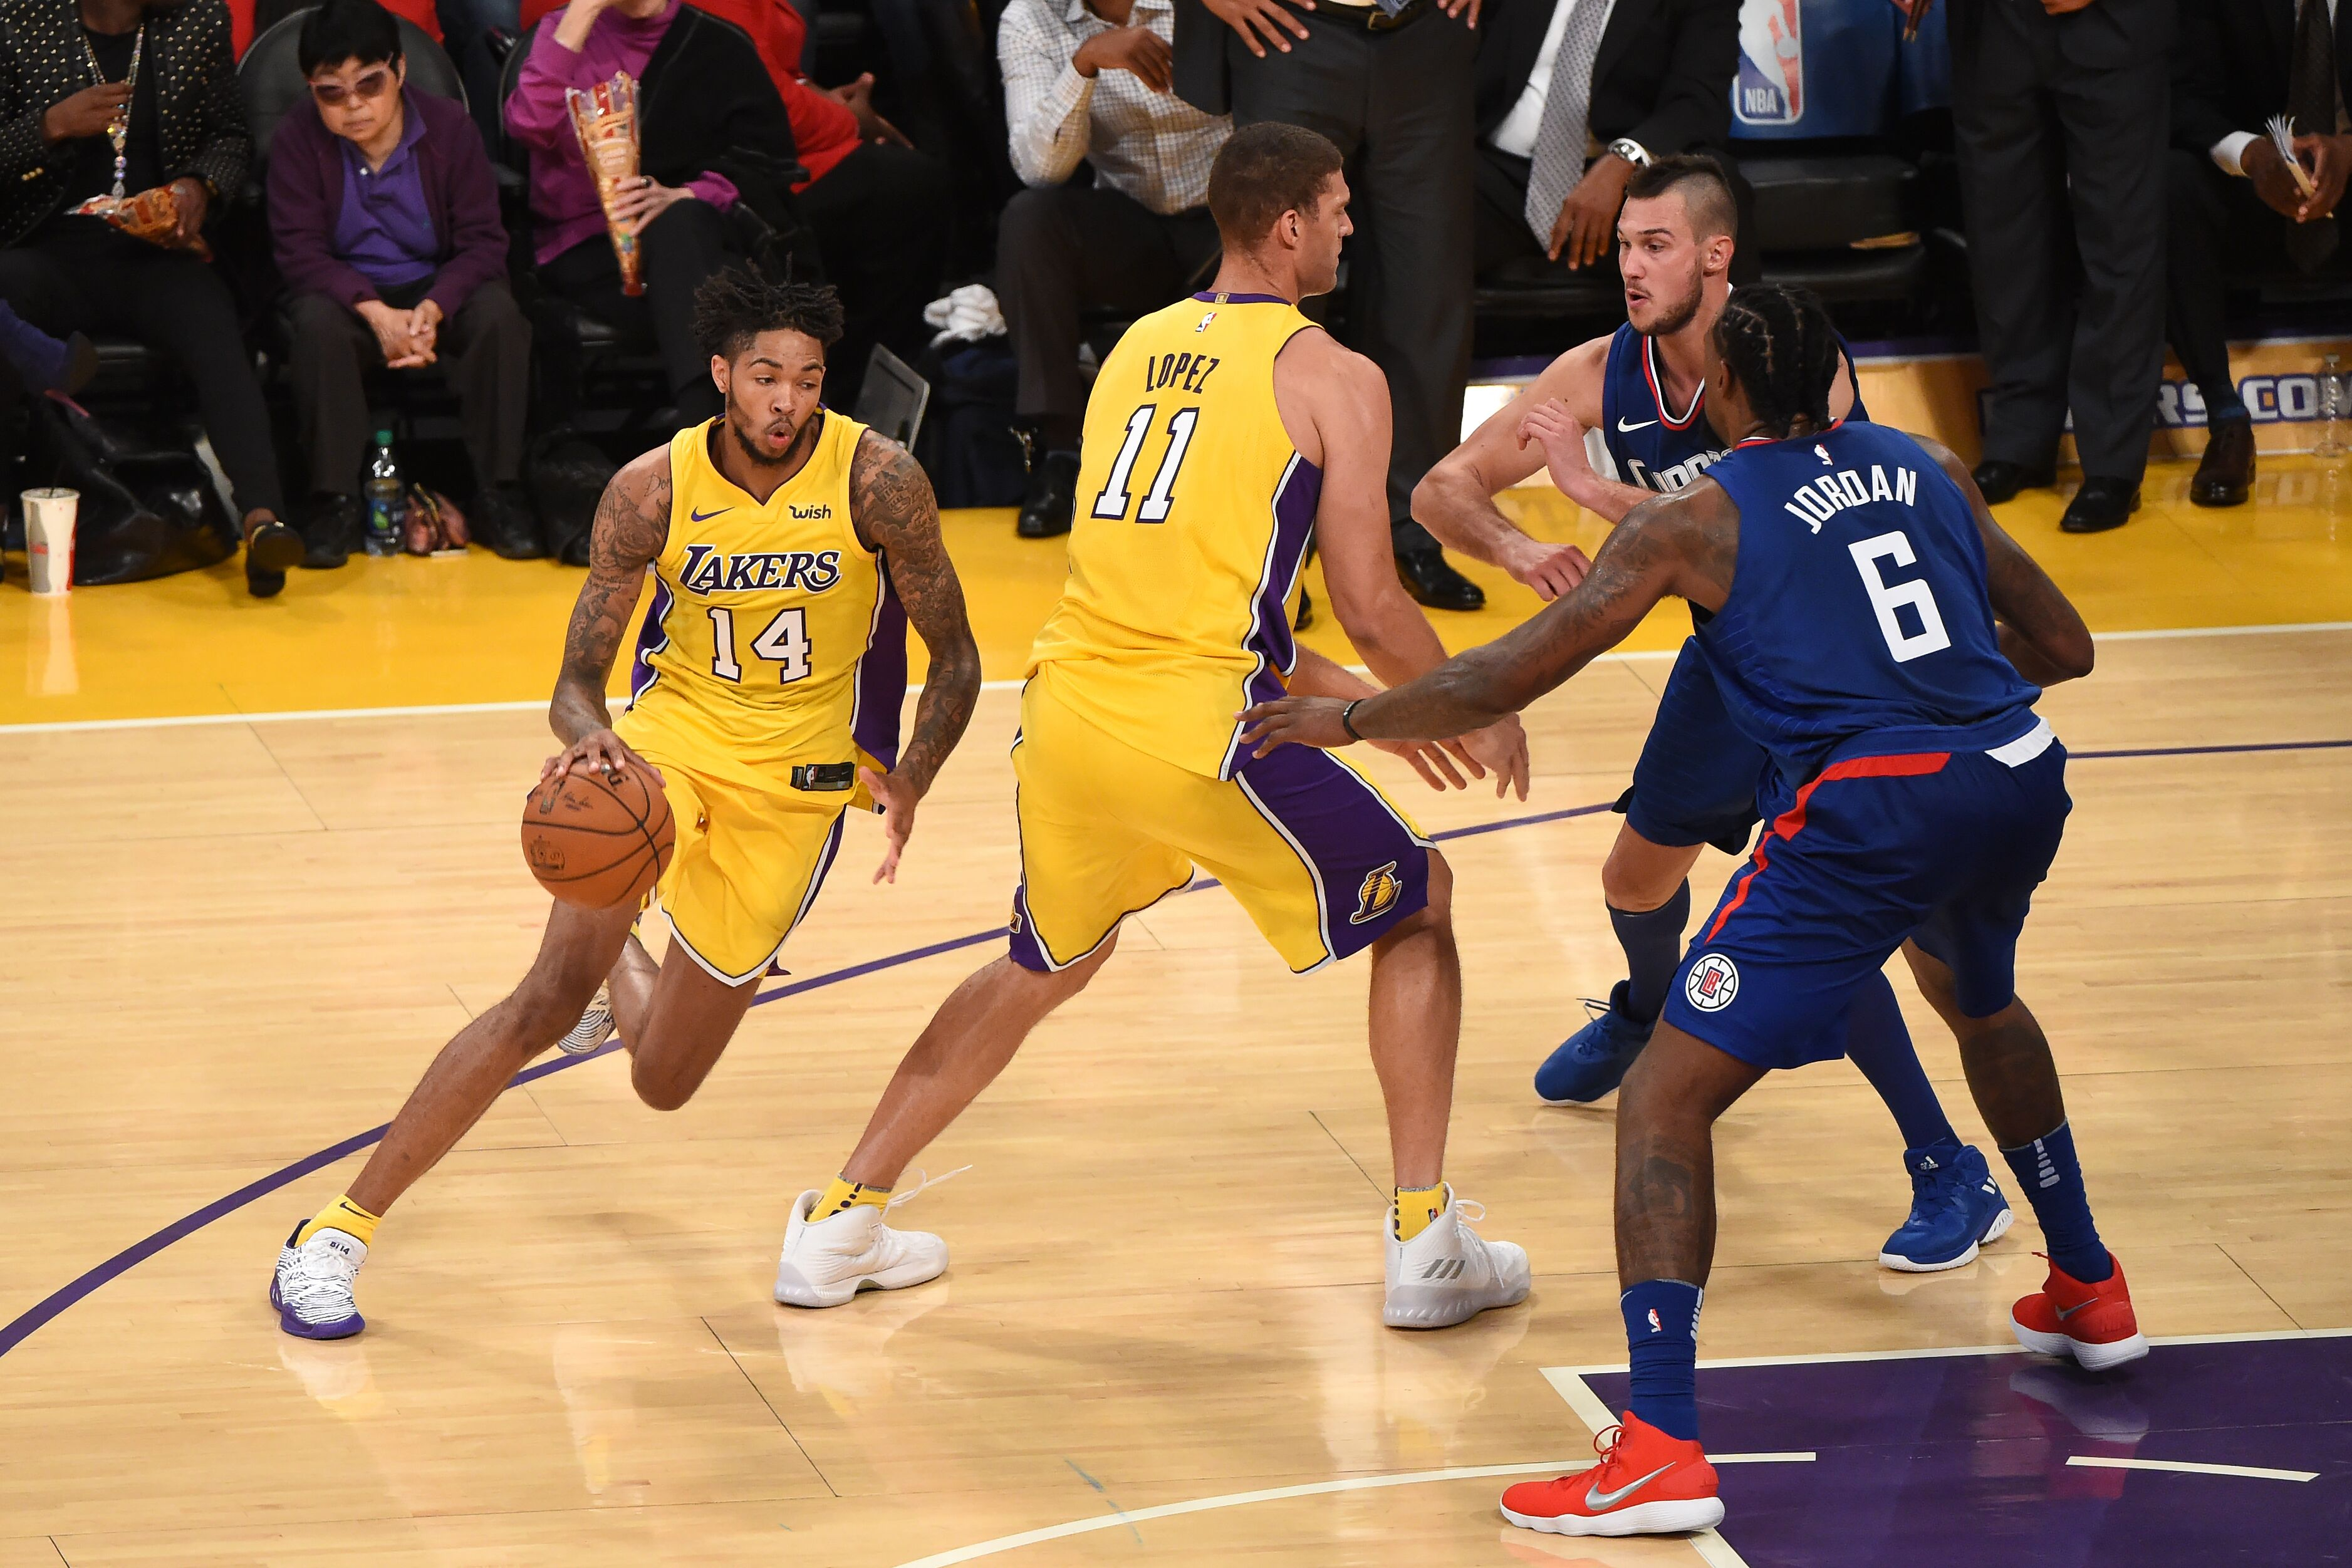 863926796-los-angeles-clippers-v-los-angeles-lakers.jpg